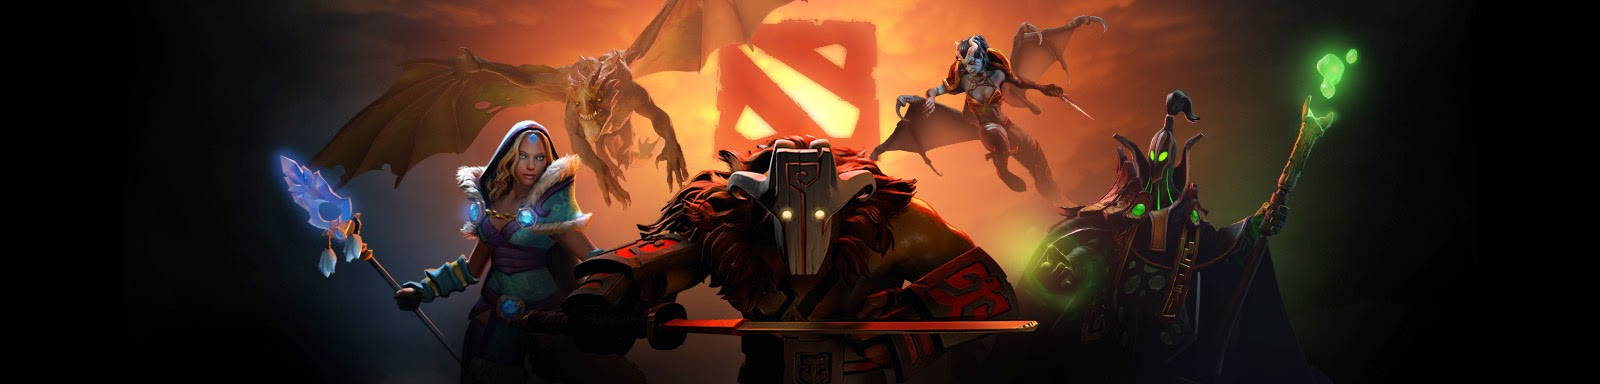 Dota 2 GamePlay Update Patch 6.84